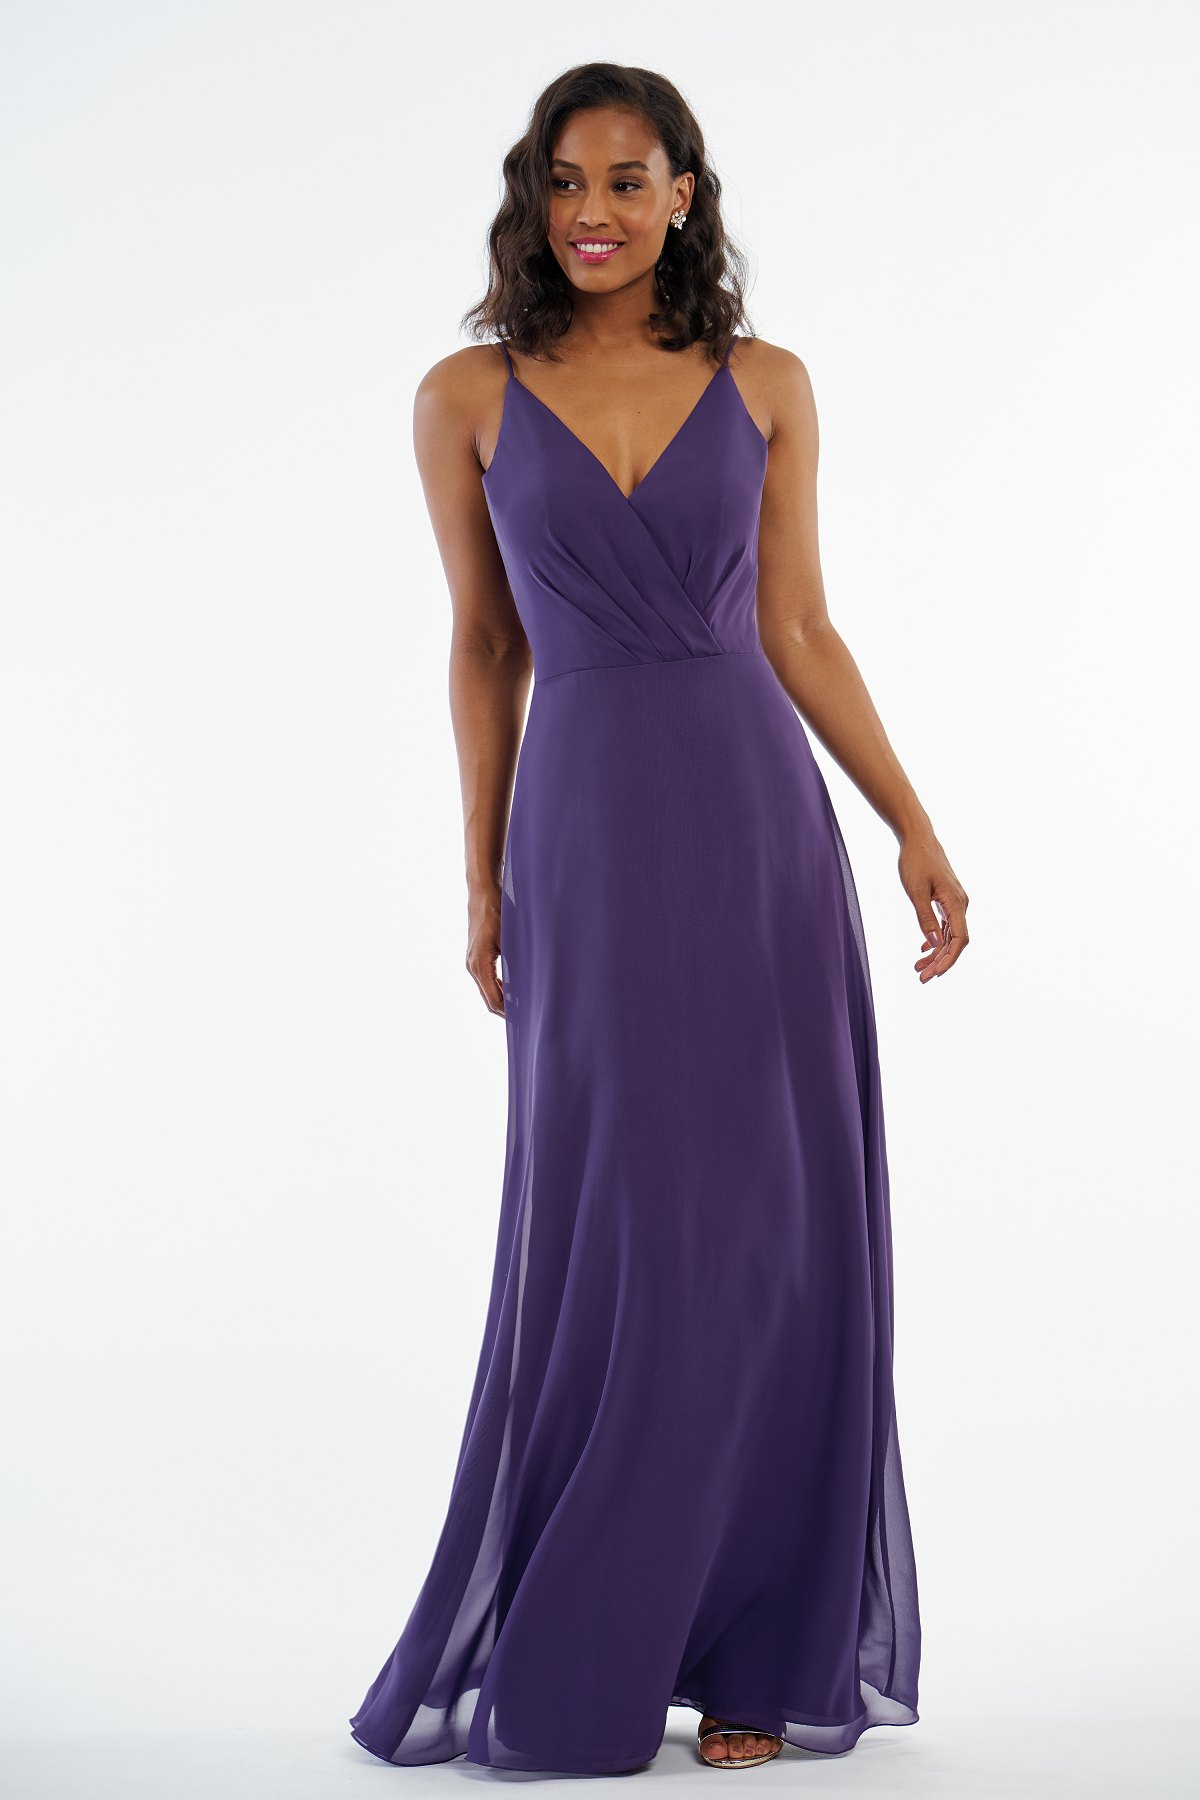 P216002 -  Pretty charlotte chiffon floor length bridesmaid dress with a flattering V-neckline, detailed gathers on the bodice, and a flowy skirt to complete the look    Available in 41 colors